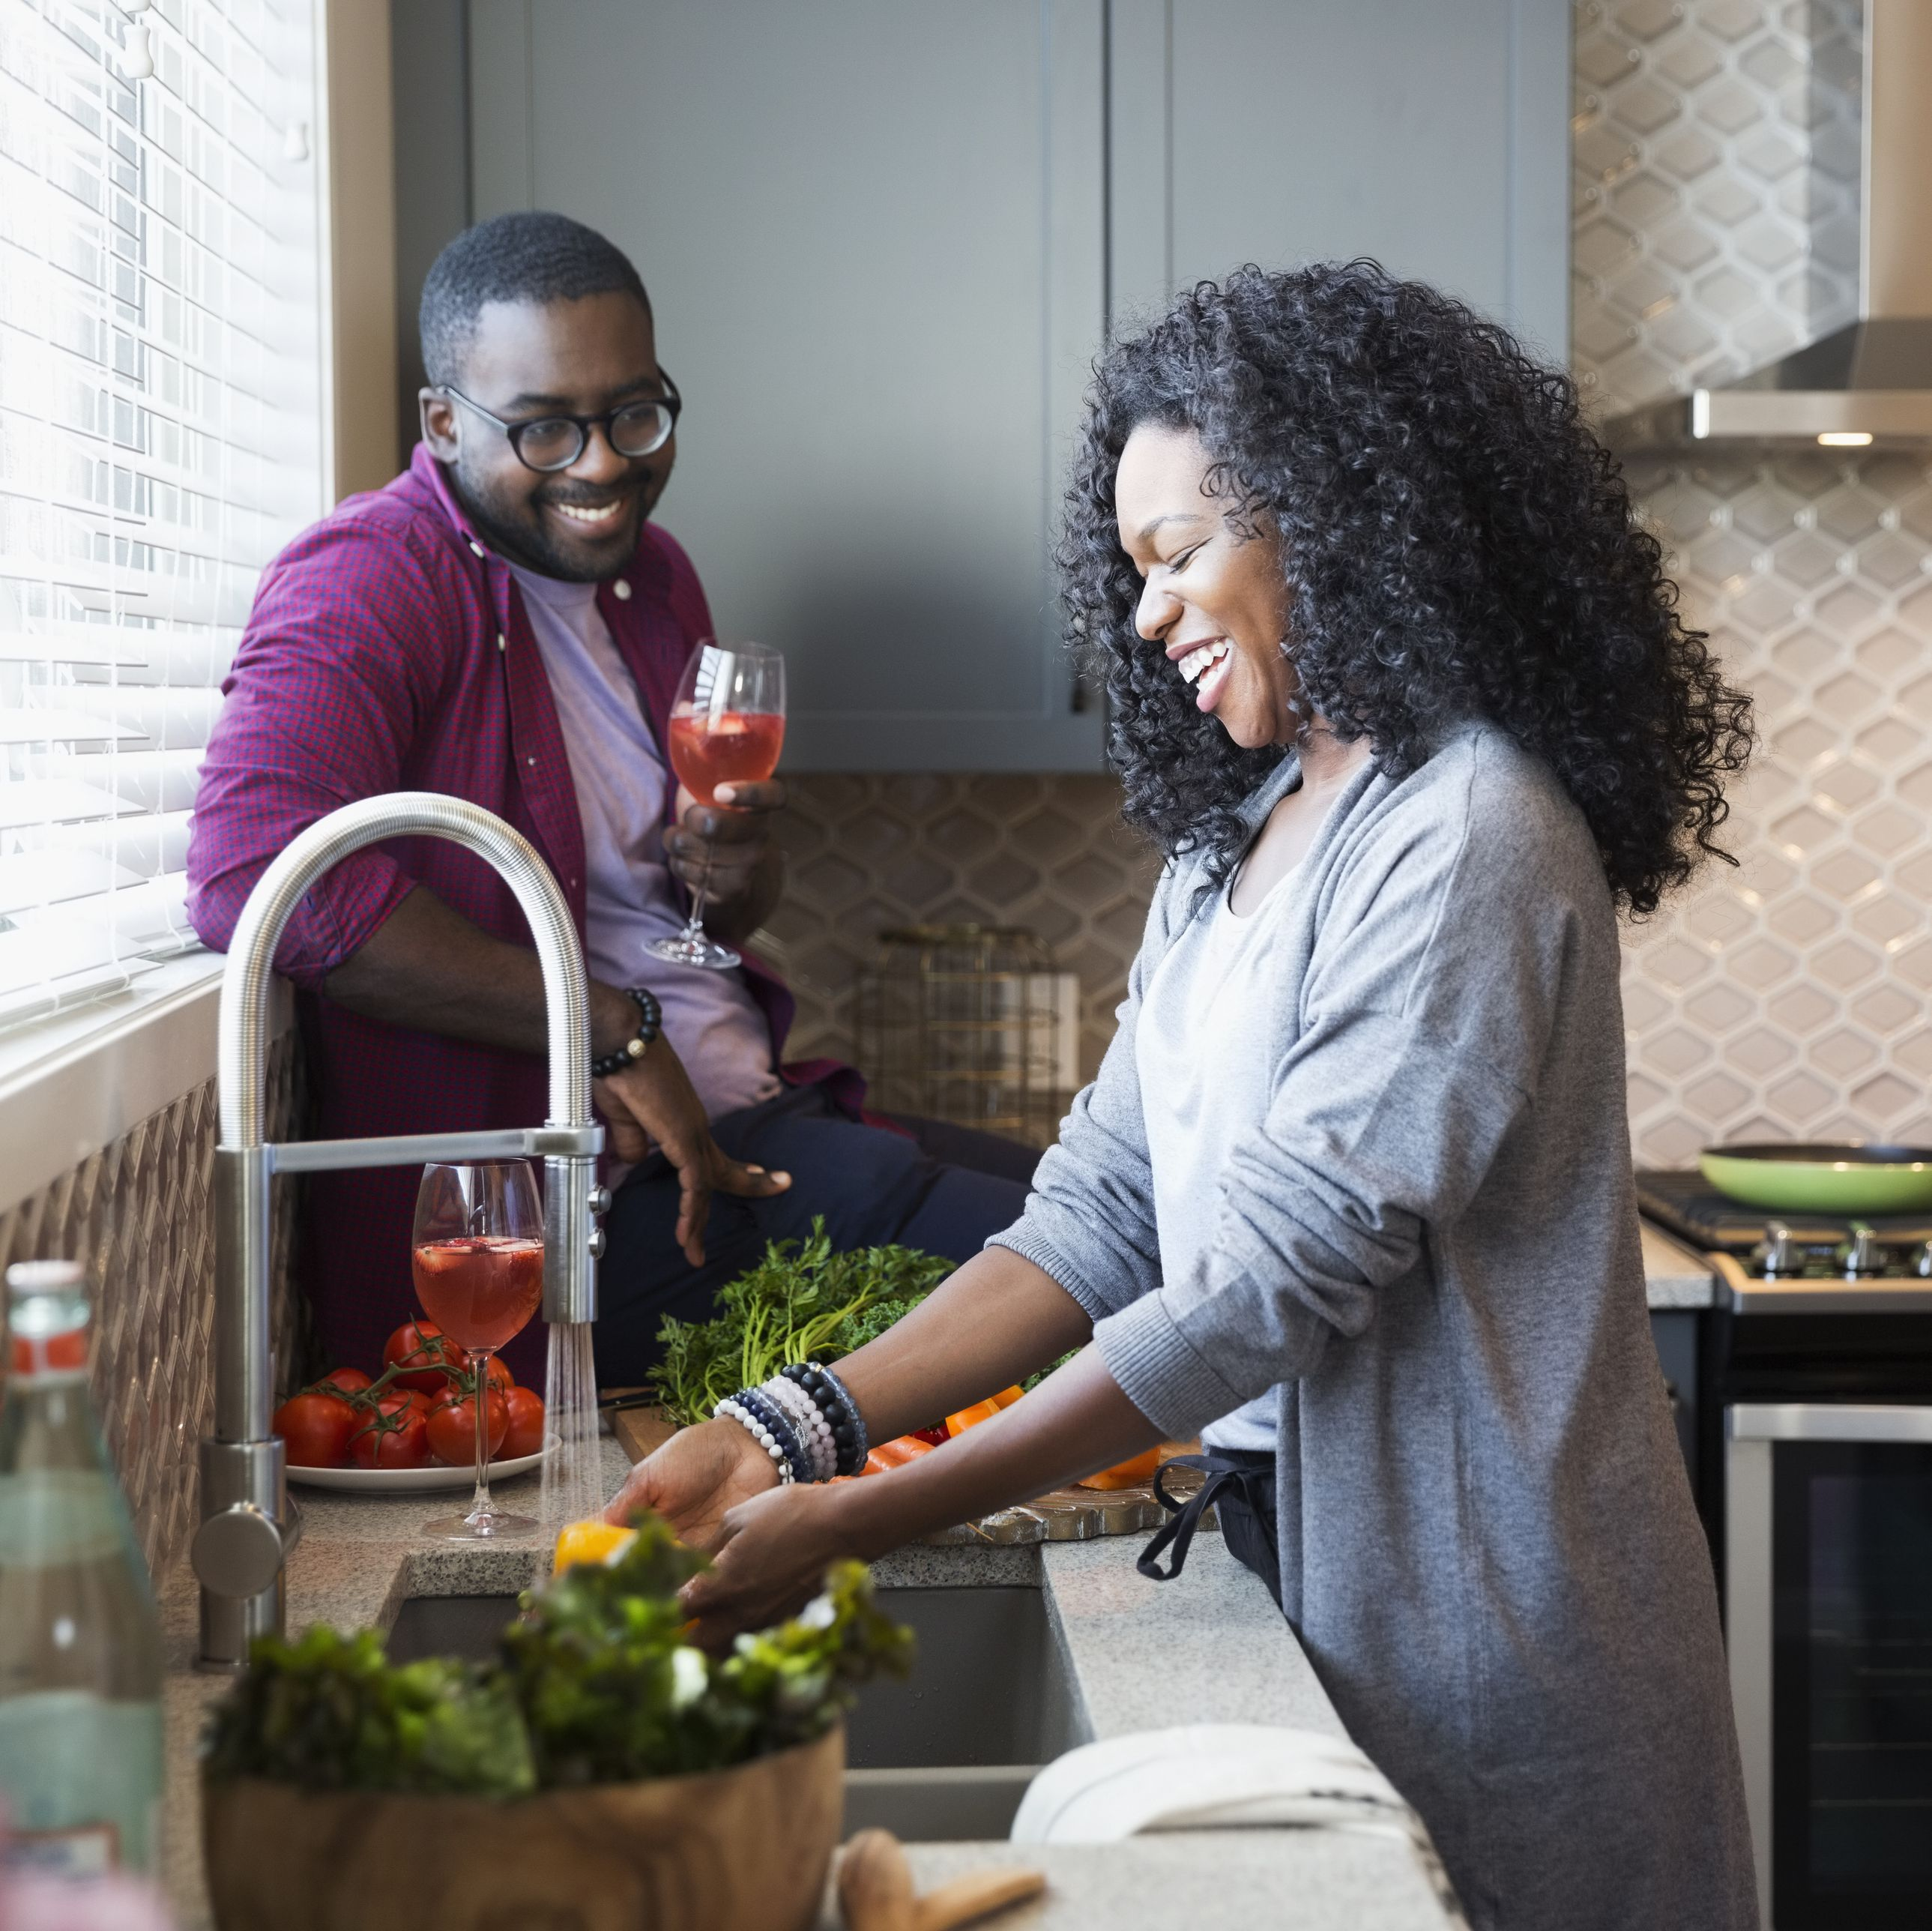 Smiling couple drinking sangria and washing vegetables at sink in kitchen